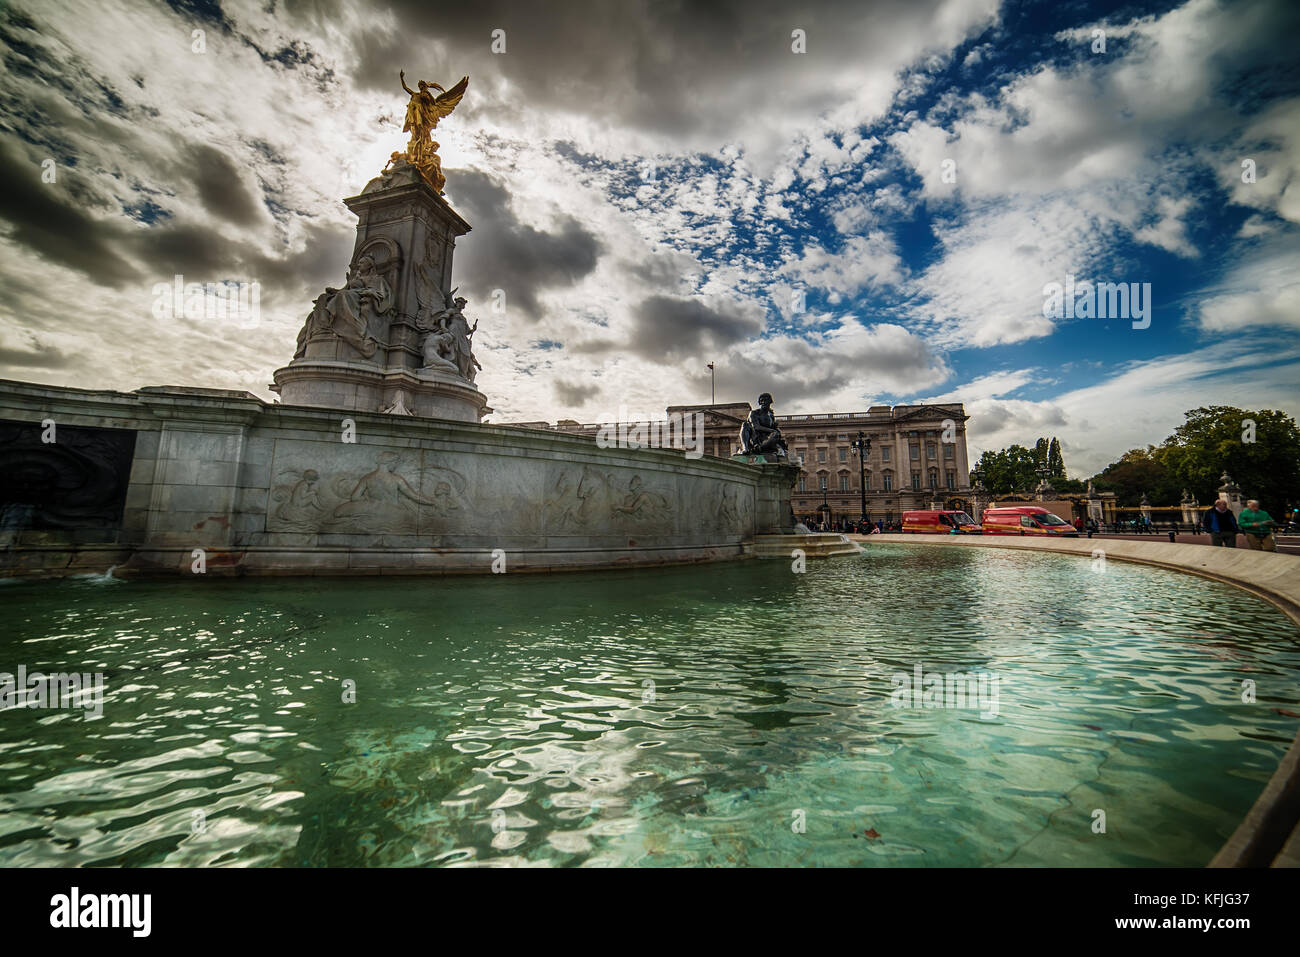 LONDON, THE UNITED KINGDOM – 2 OKTOBER, 2017: the Queen Victoria Memorial and Buckingham Palace - Stock Image